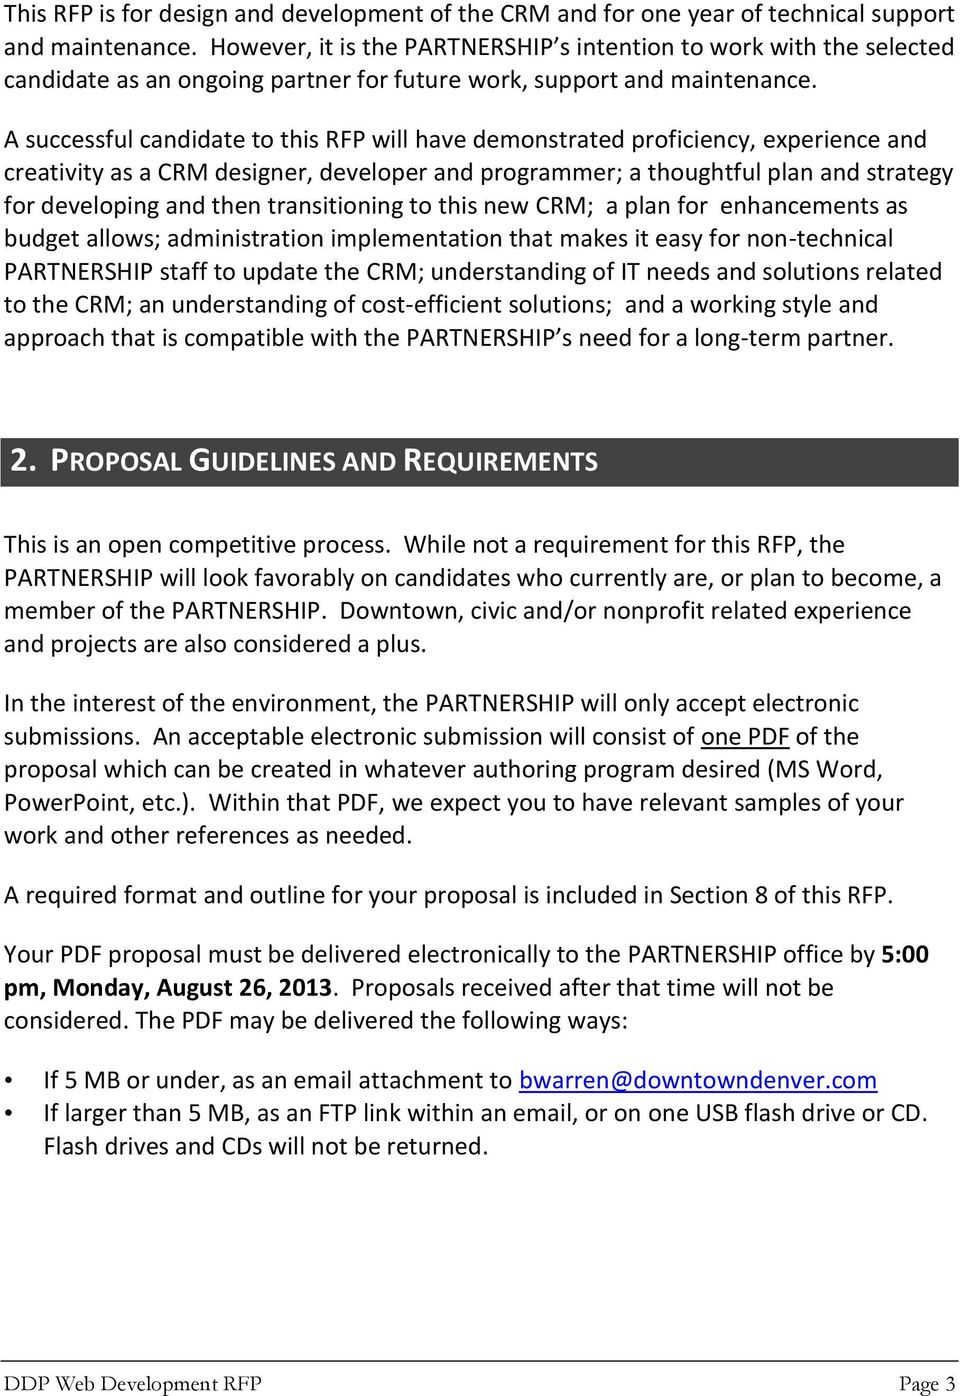 REQUEST FOR PROPOSAL  Customer Relationship Management